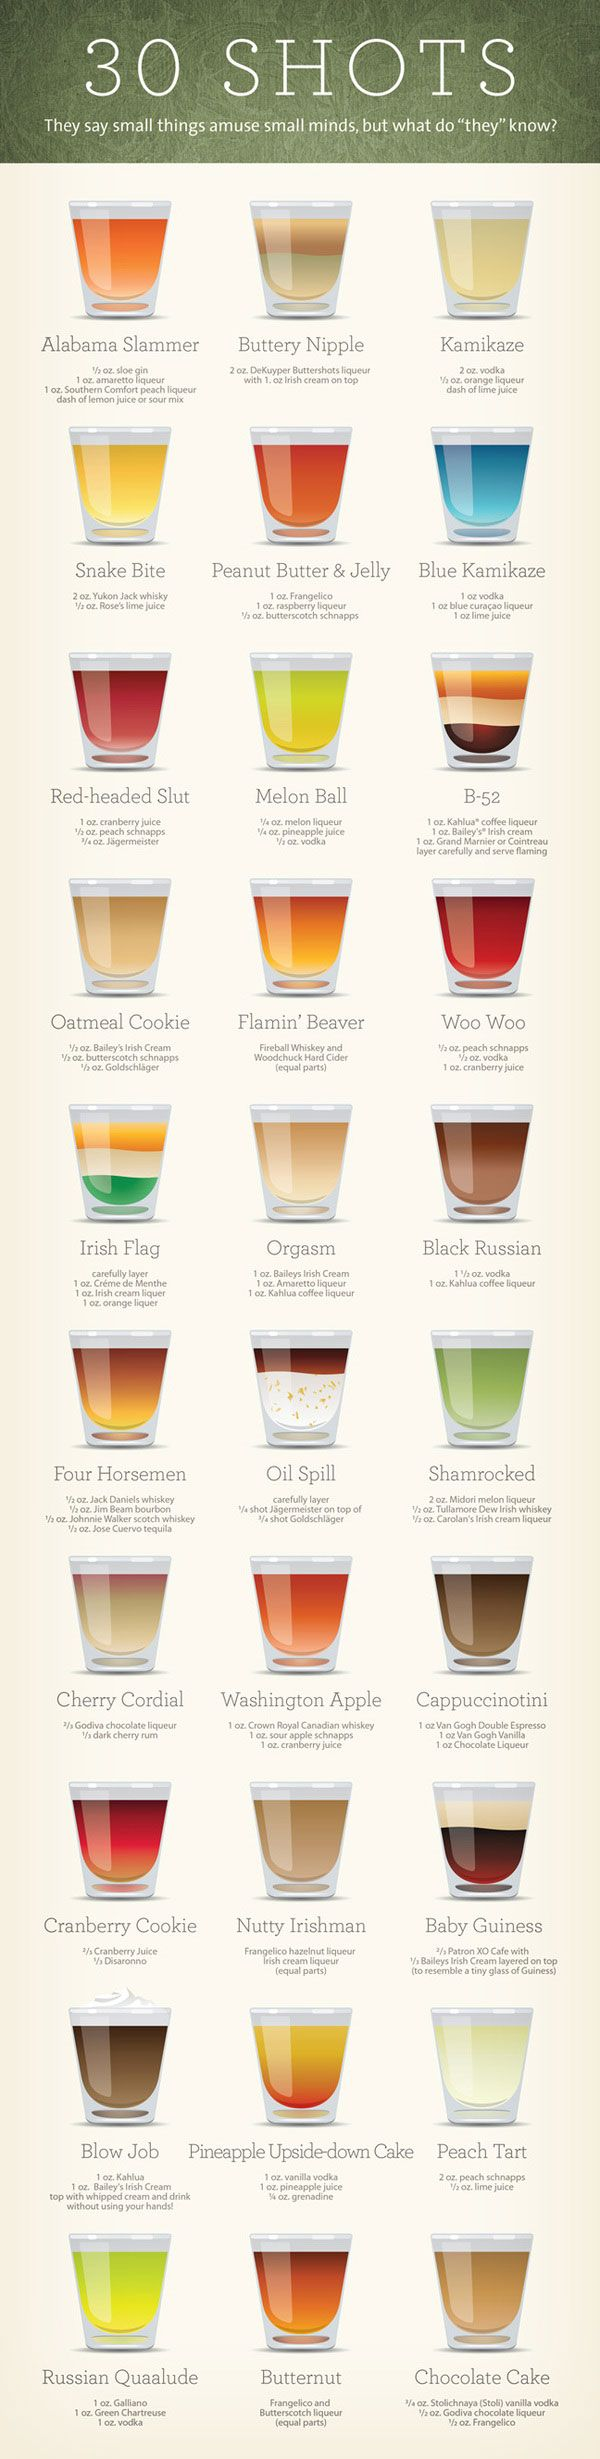 30 shots -- 30 alcohol beverage recipe